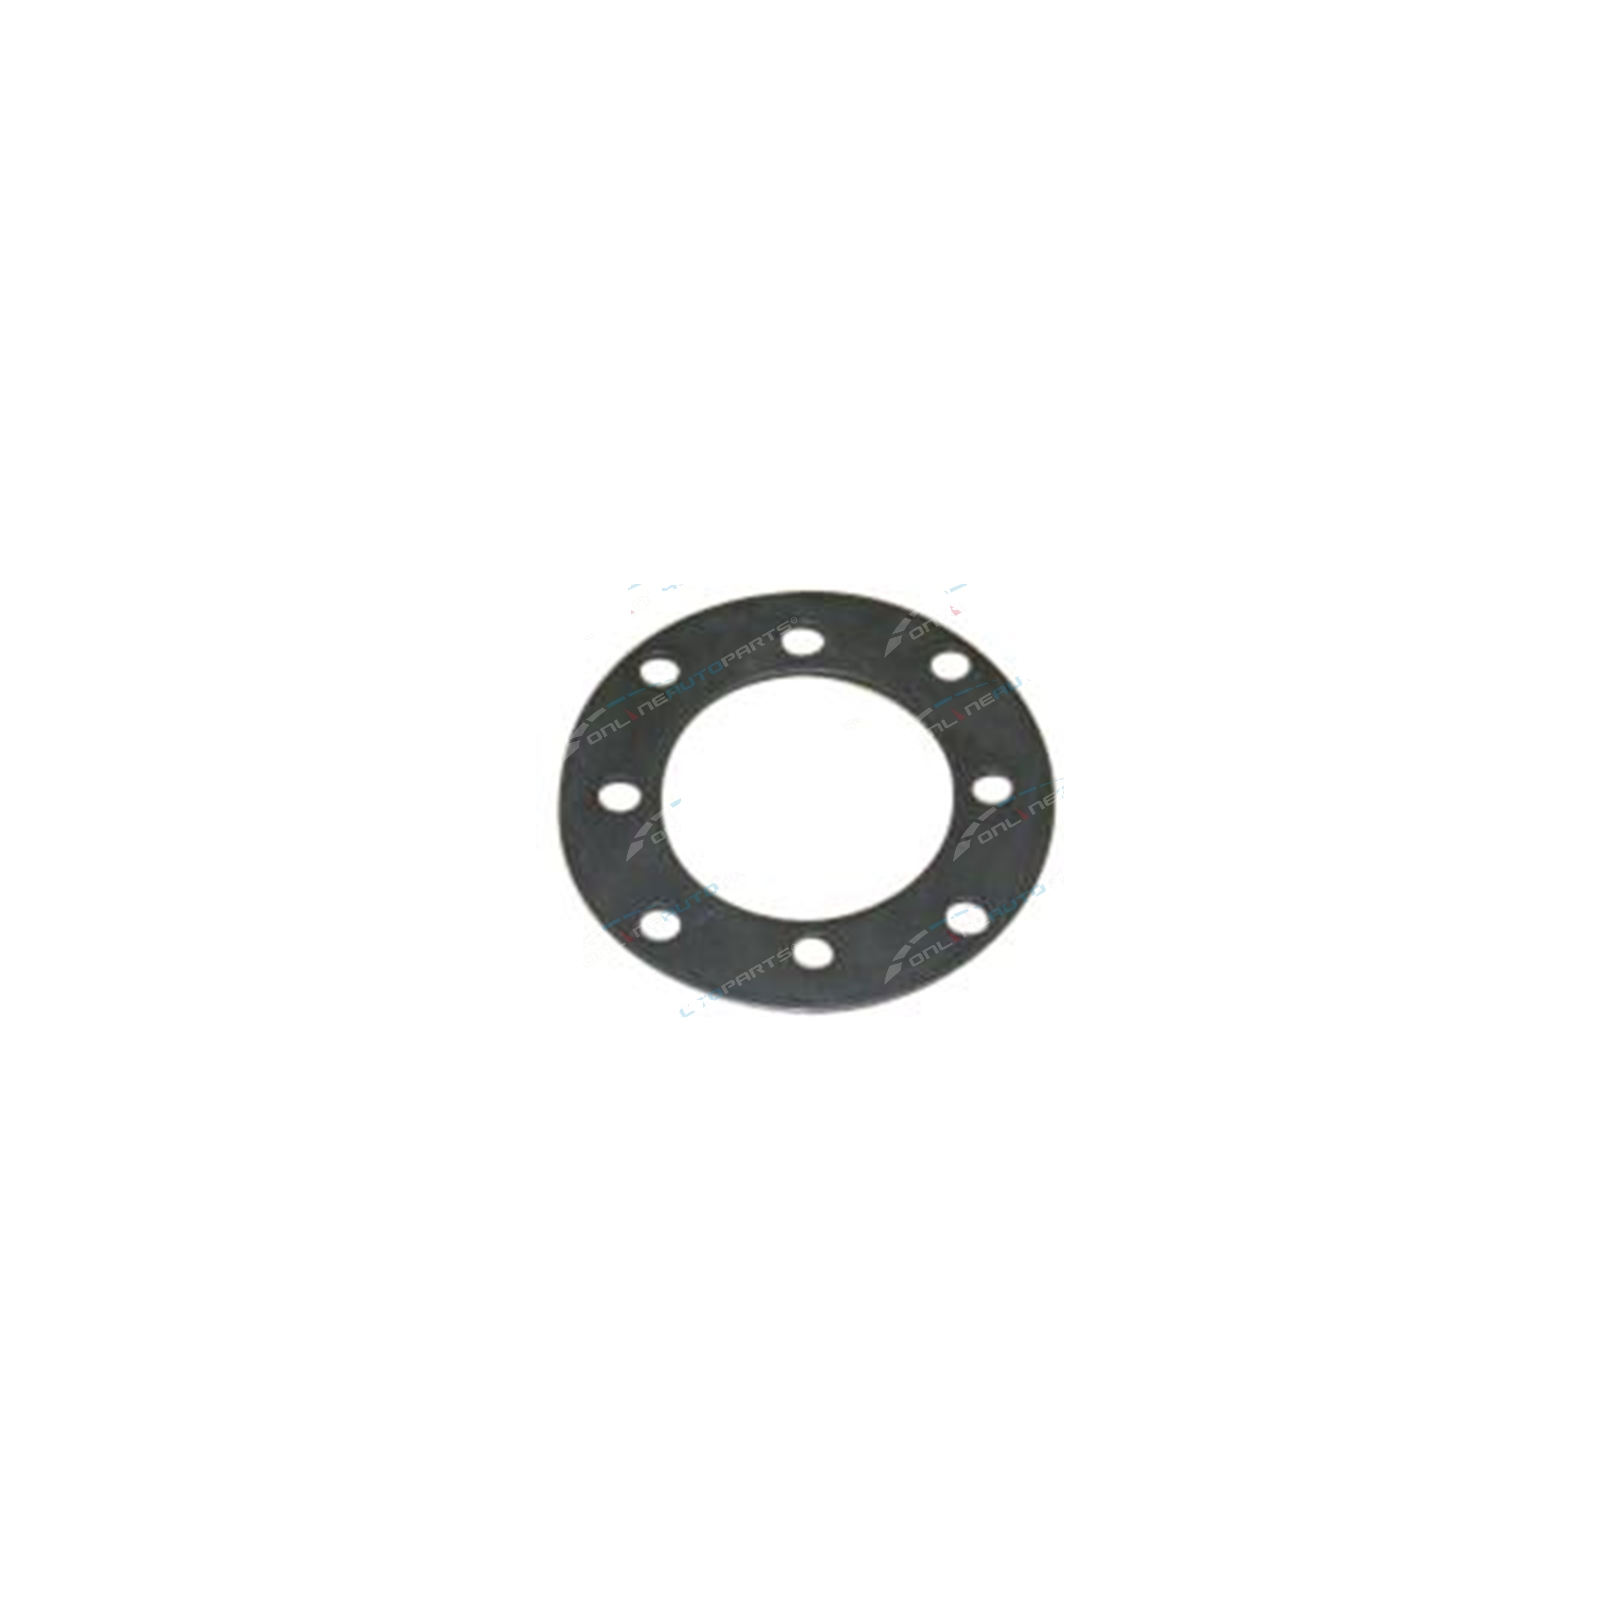 Toyota Landcruiser Diff Side Gear Thrust Washer 2-2.1mm